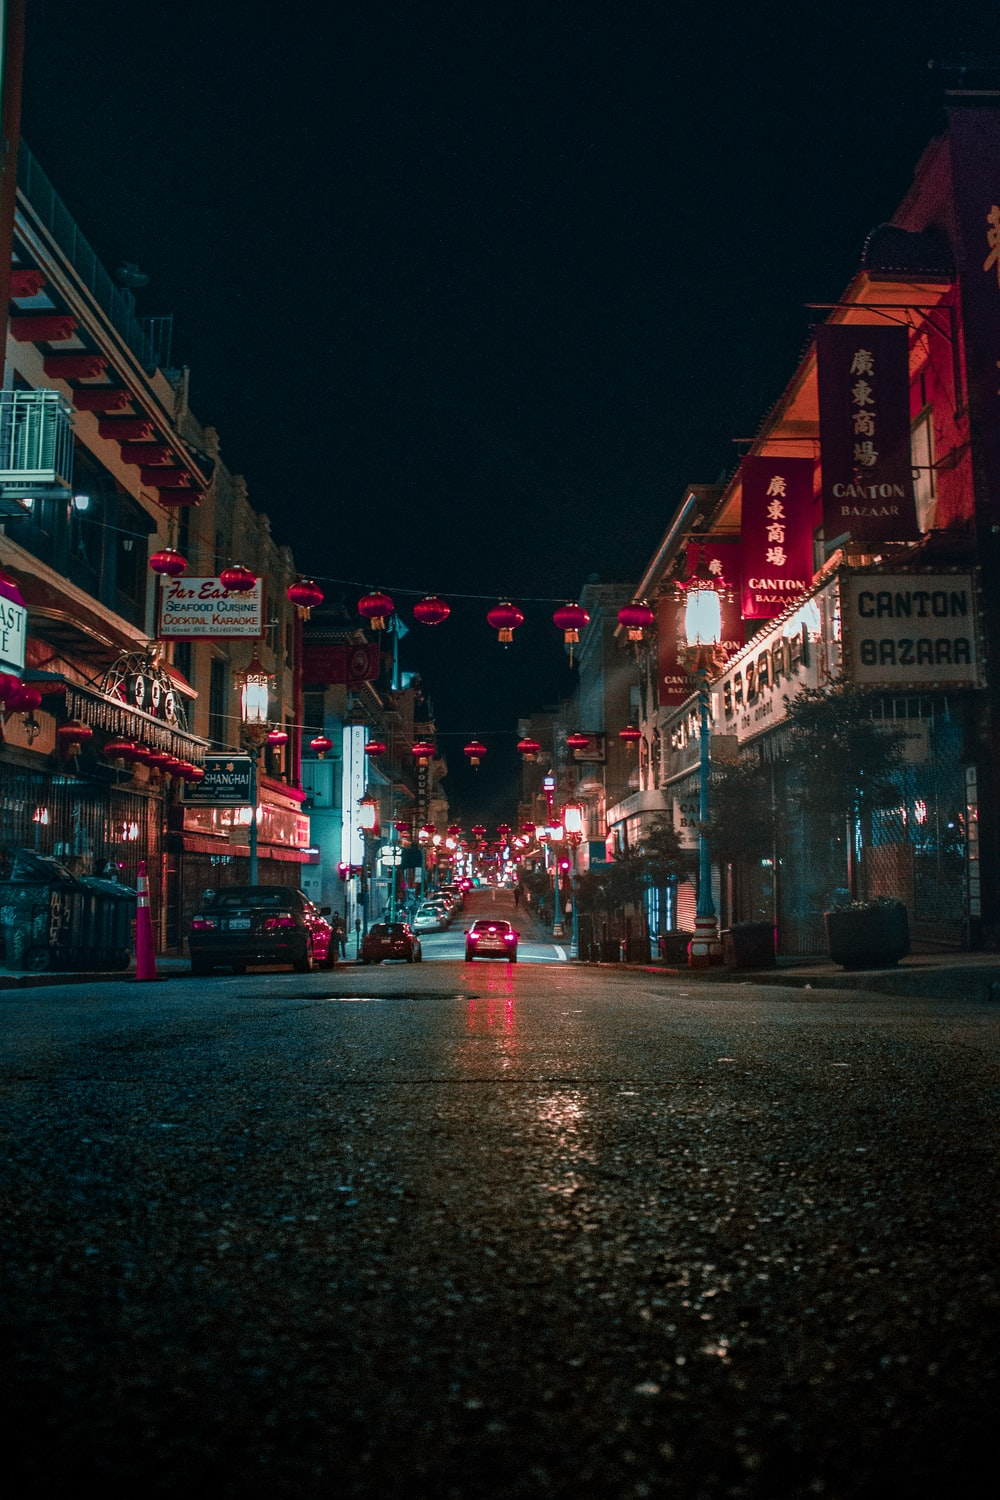 Canton Bazaar storefront during nighttime